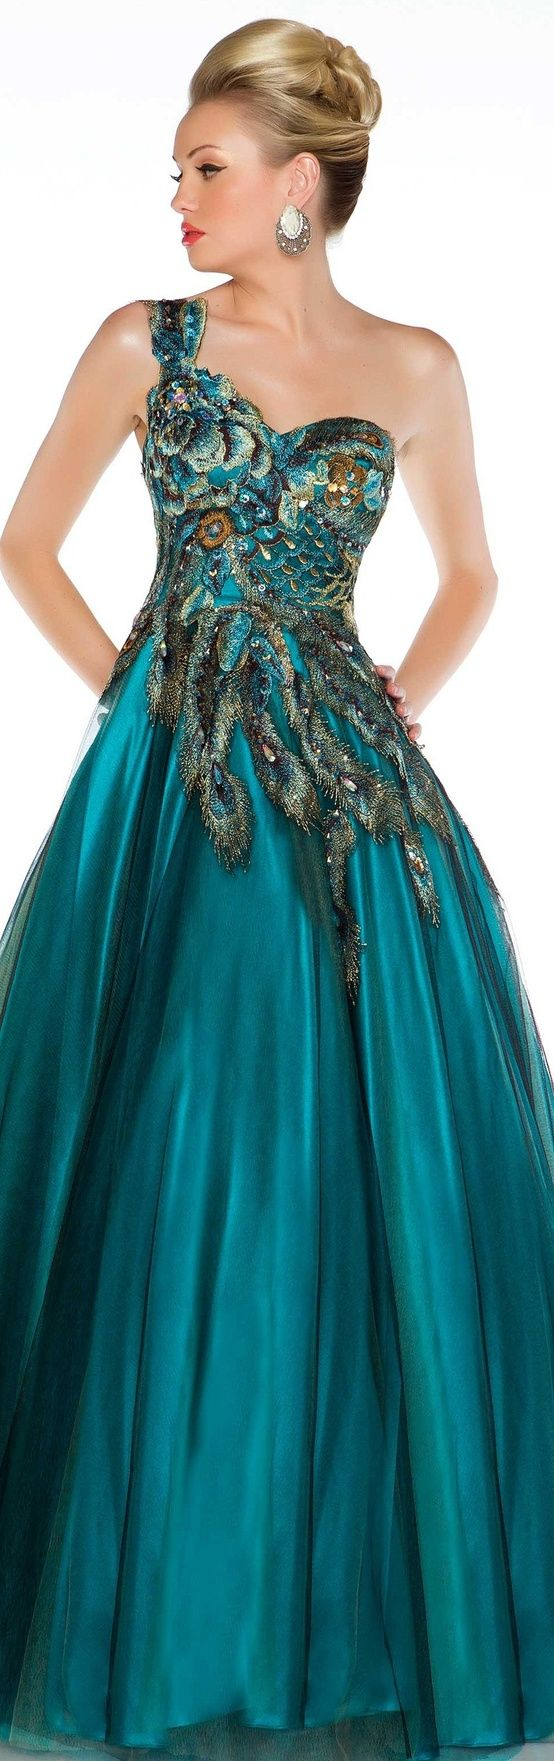 Fleur delacour wedding dress   best Turquoise et Or images on Pinterest  Teal Aqua and